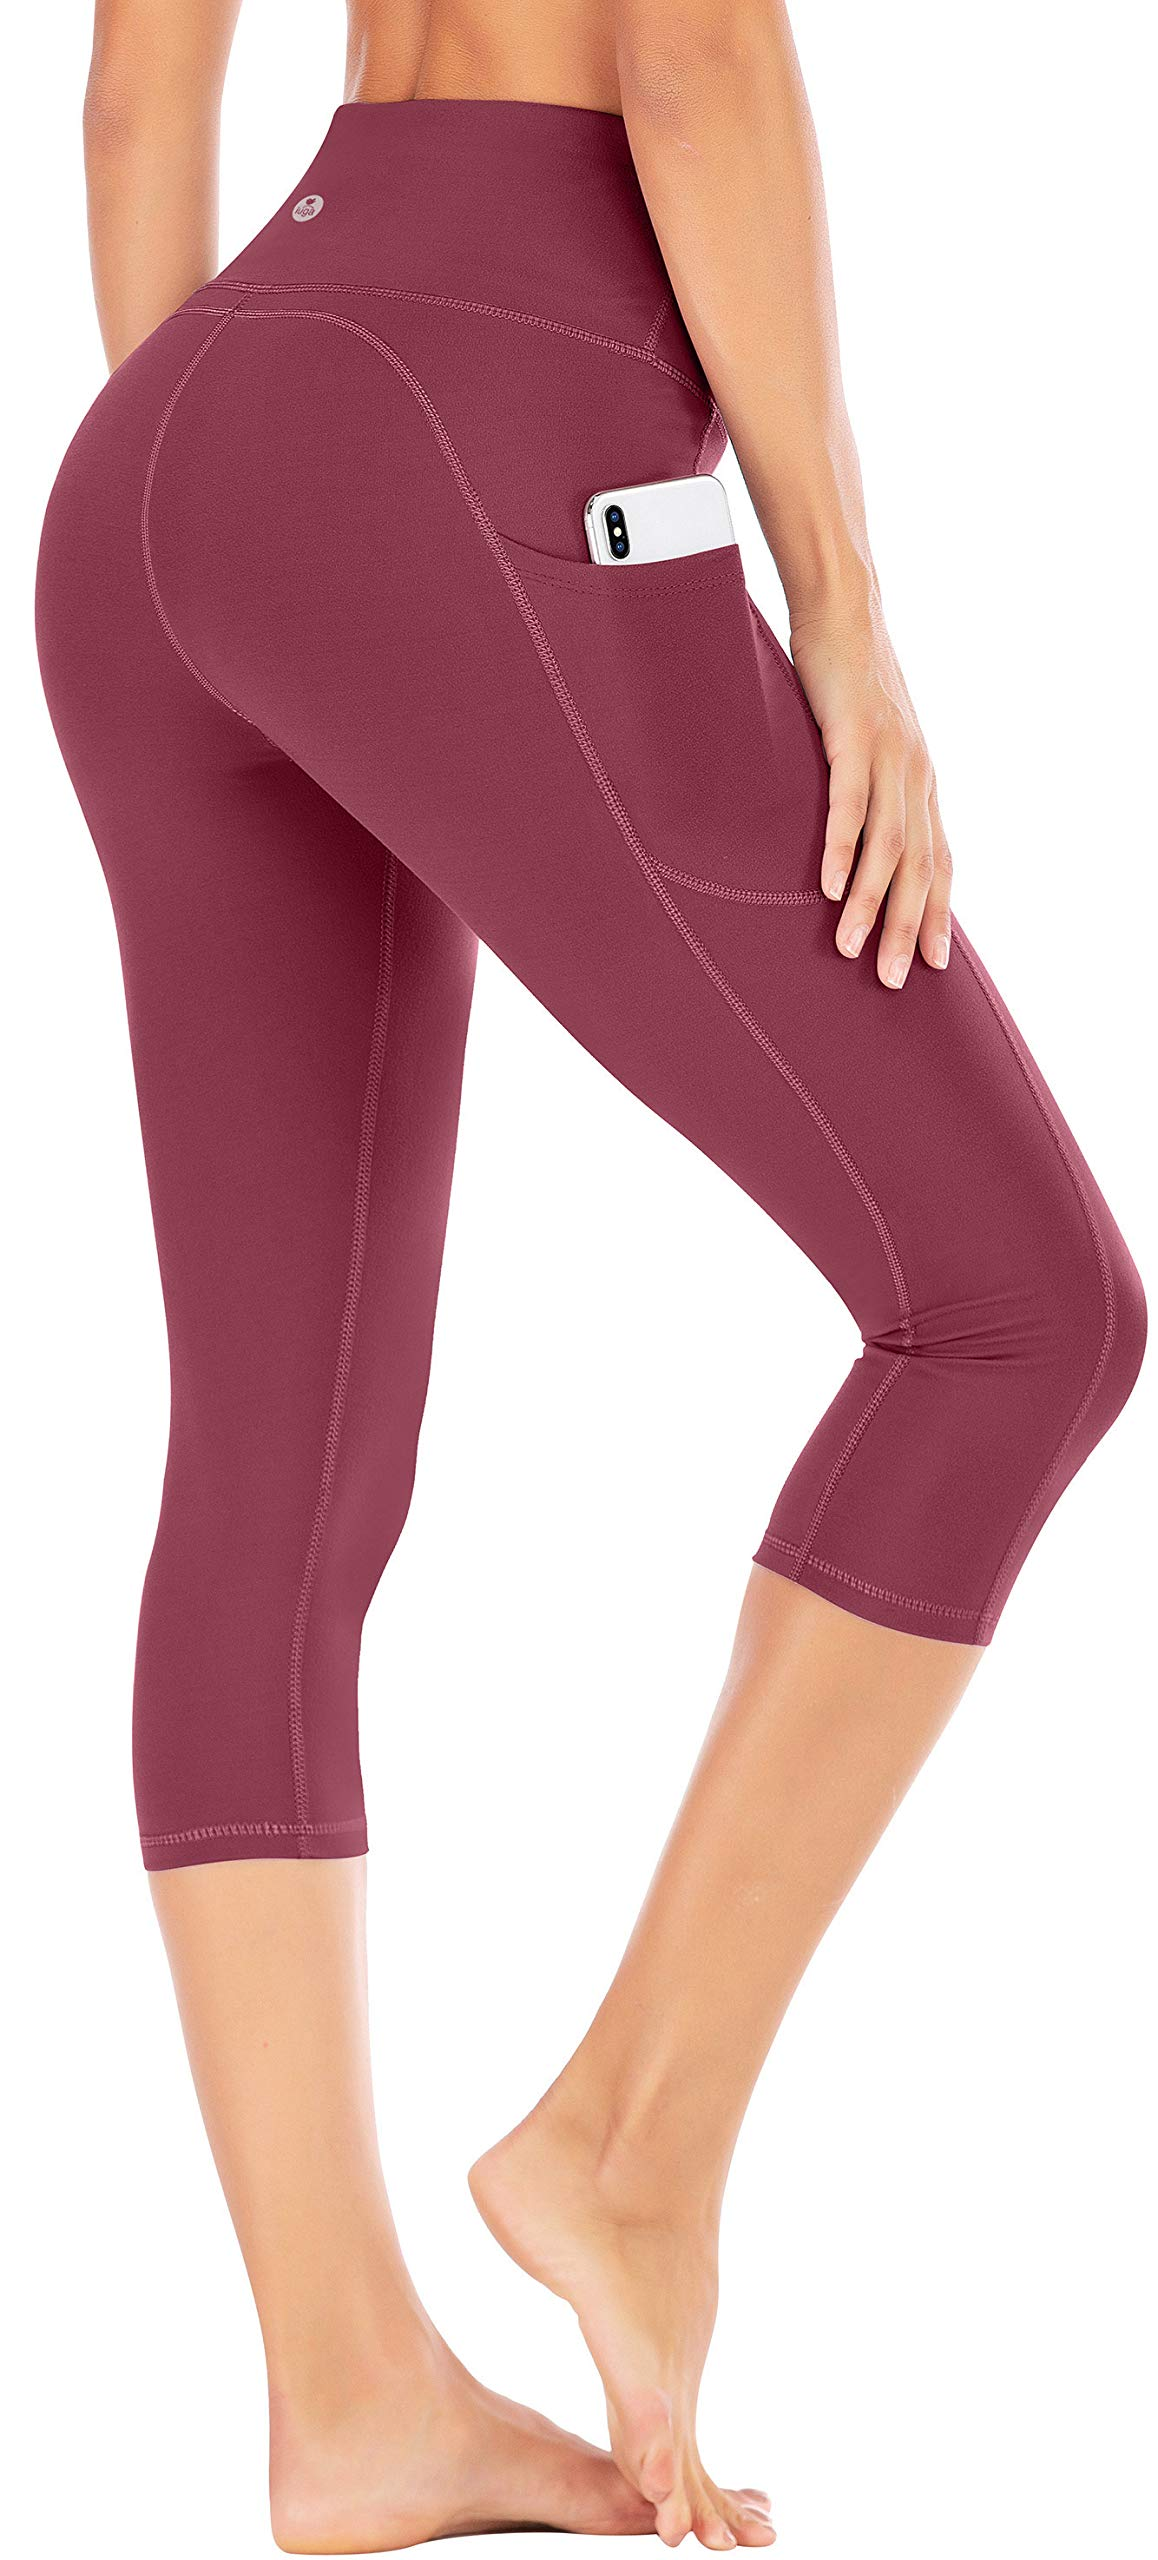 IUGA High Waist Yoga Pants with Pockets, Tummy Control Yoga Capris for Women, 4 Way Stretch Capri Leggings with Pockets(Maroon, XS) by IUGA